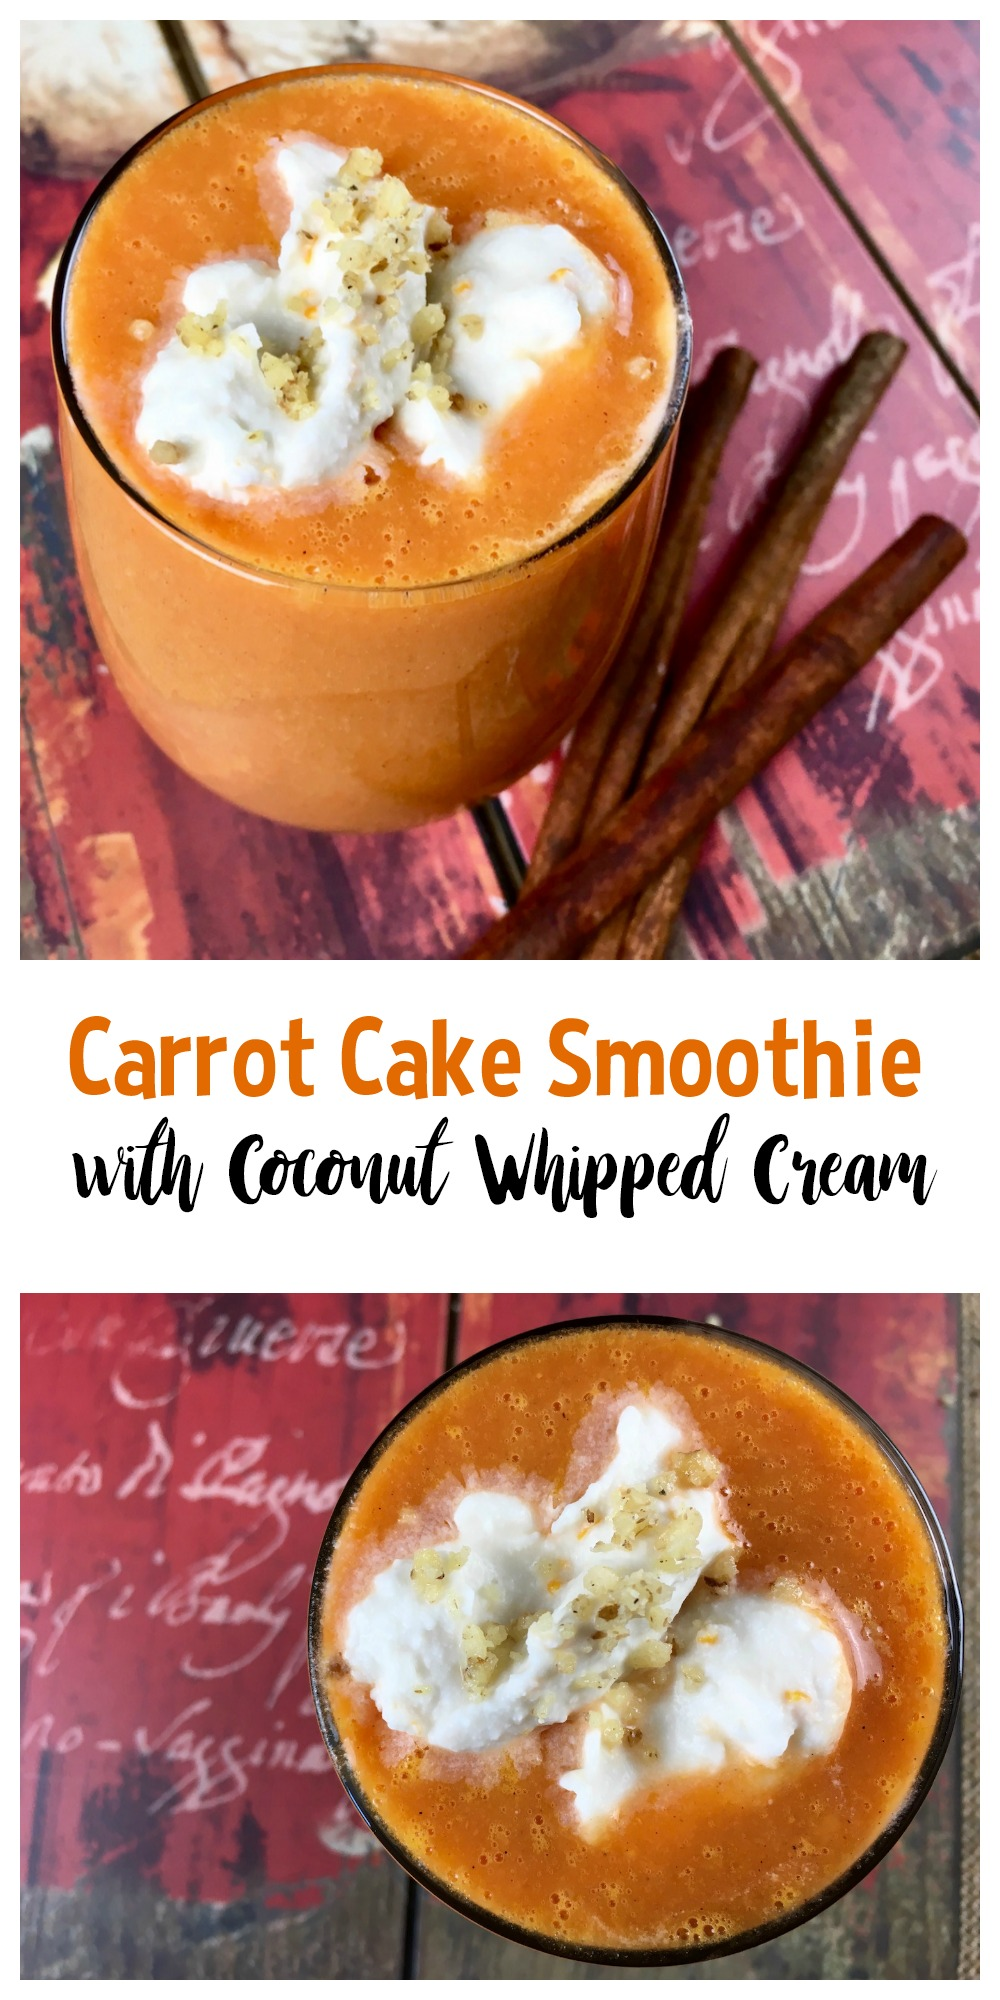 This delicious carrot cake smoothie tastes more like a decadent dessert than a nutritious way to start the day. And take my word for it, the Coconut Whipped Cream makes it!